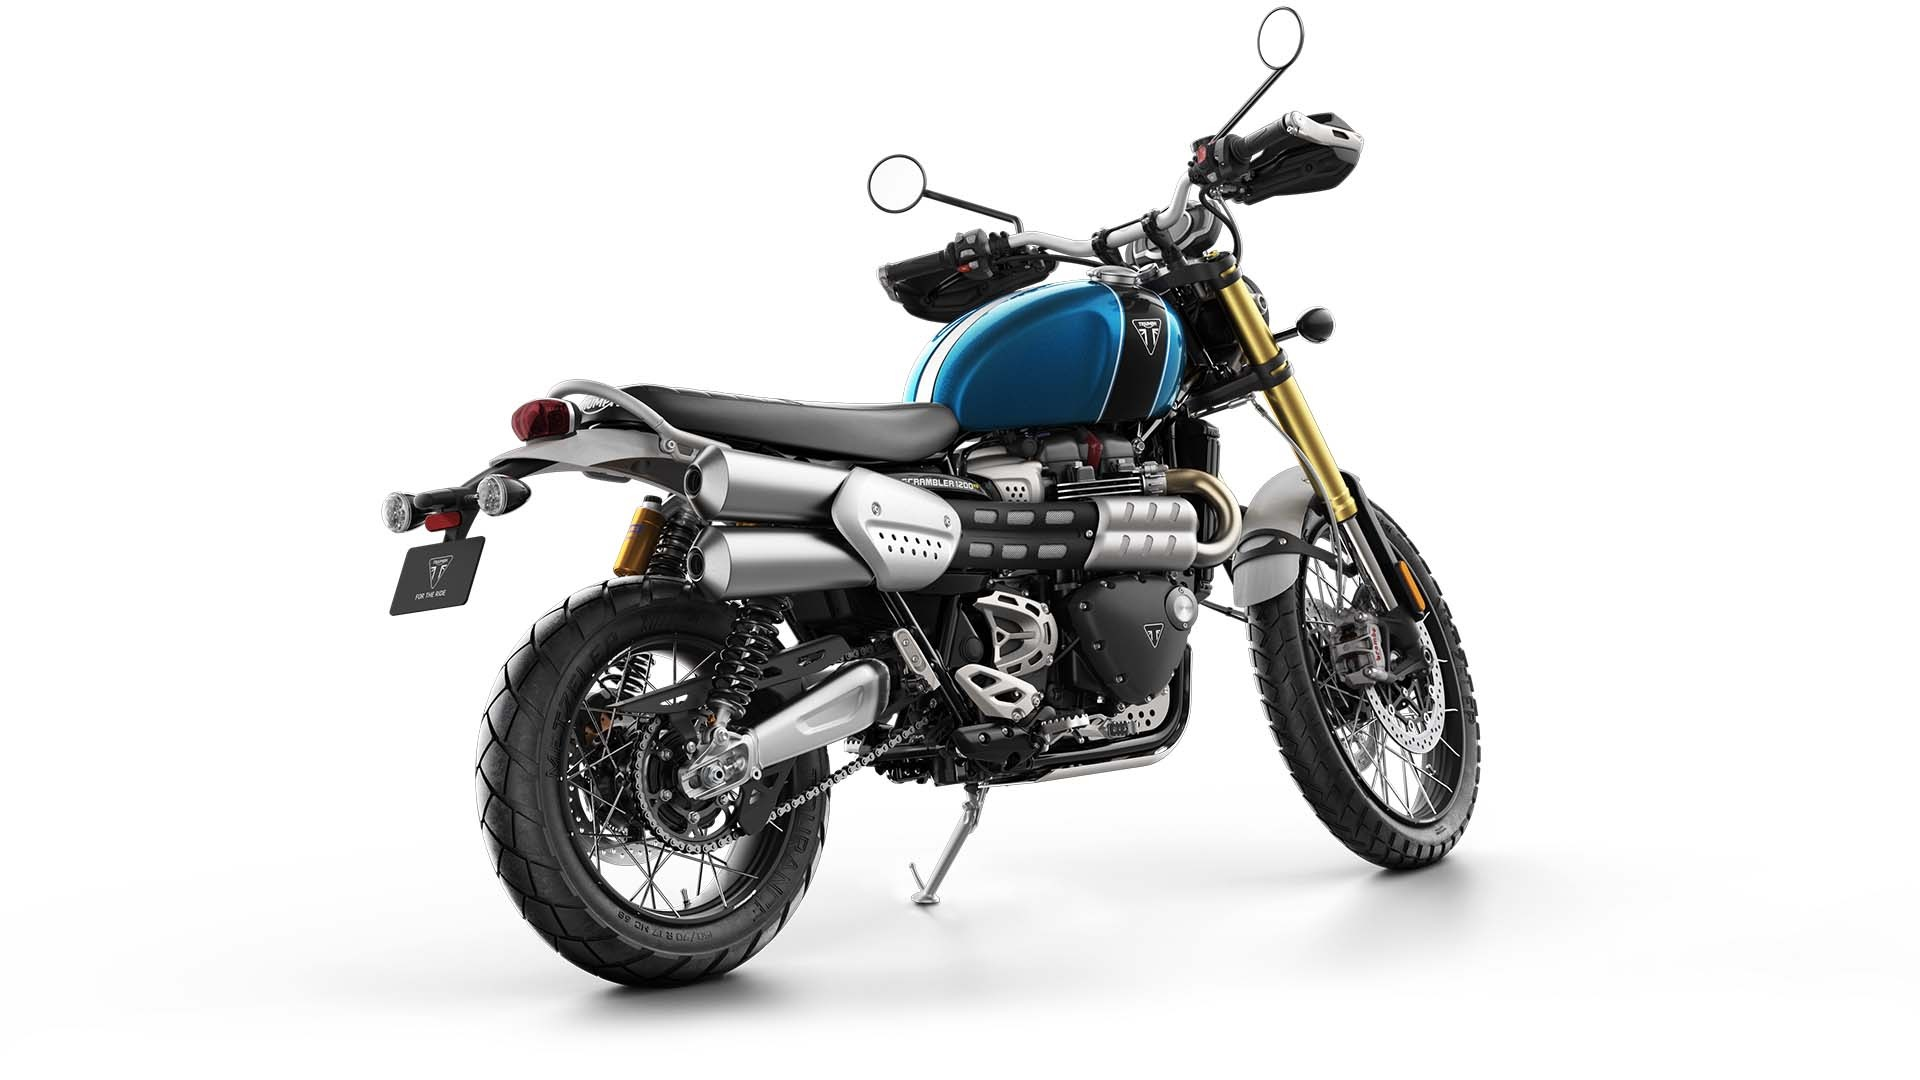 New 2021 Triumph Scrambler 1200 XC Motorcycles for Sale in